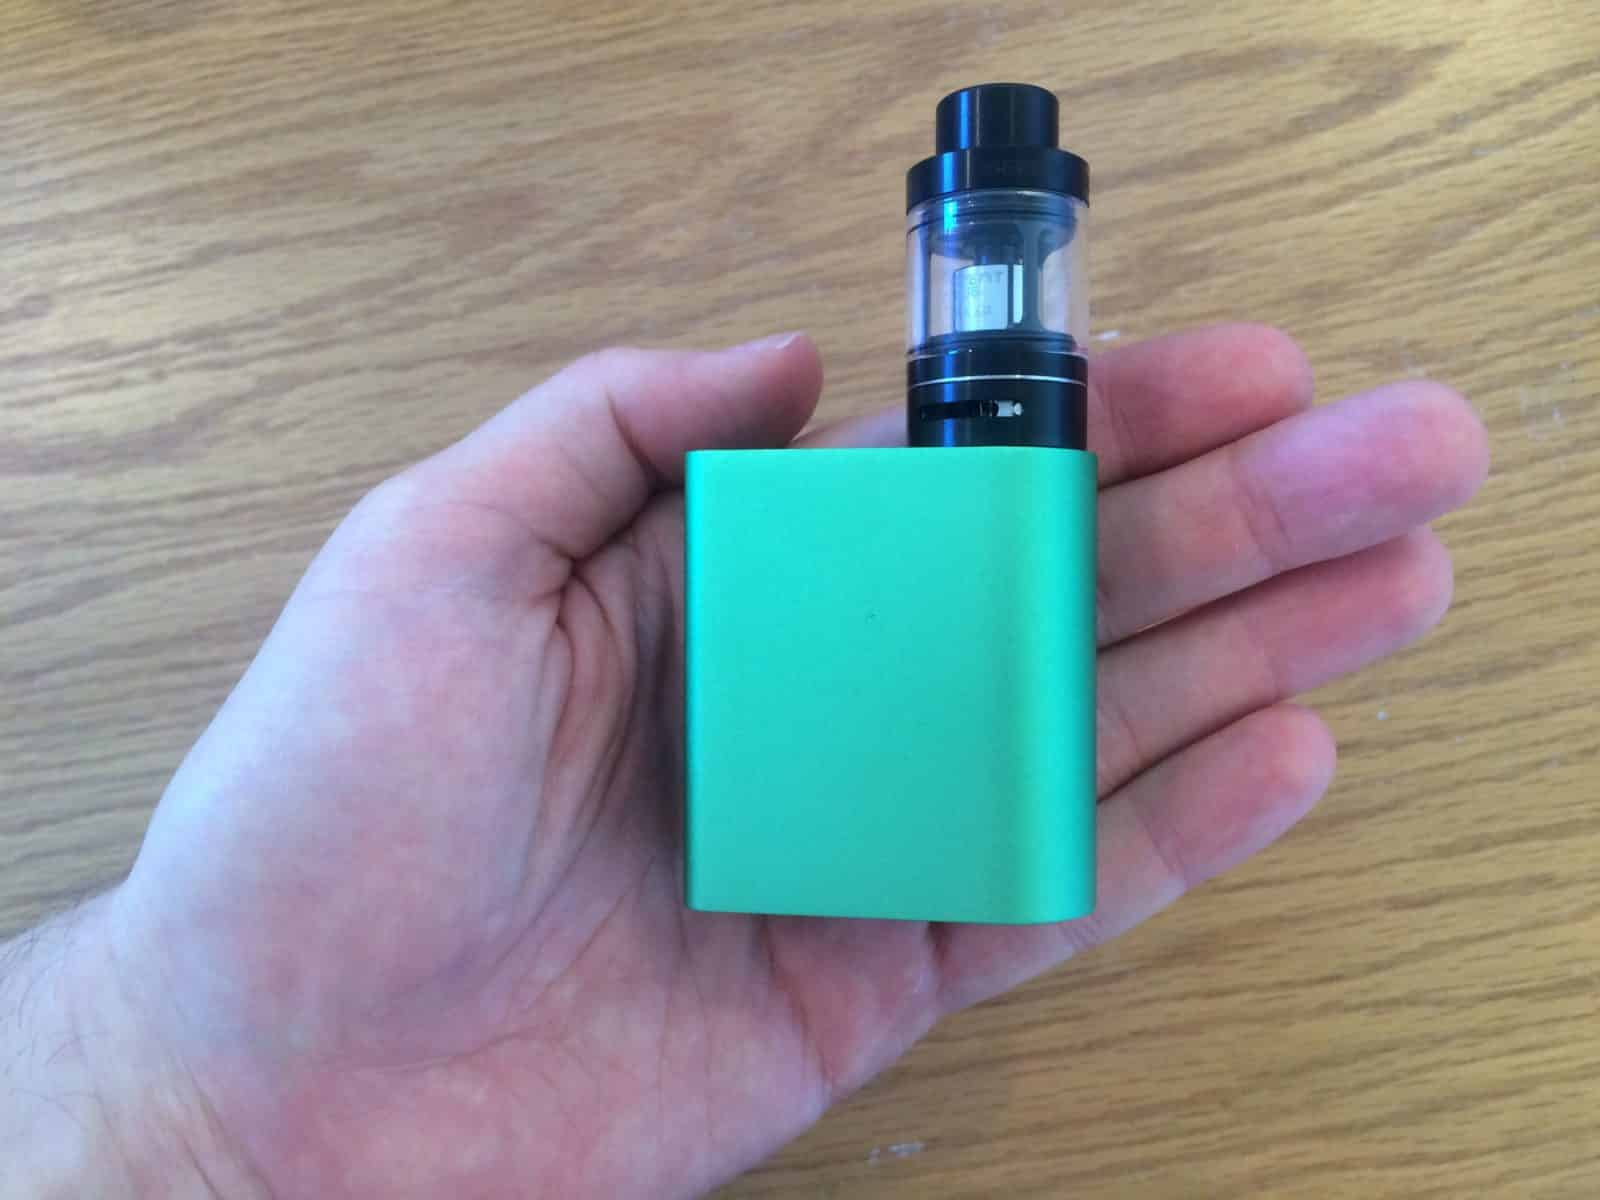 Green Serpent Box 50w kit